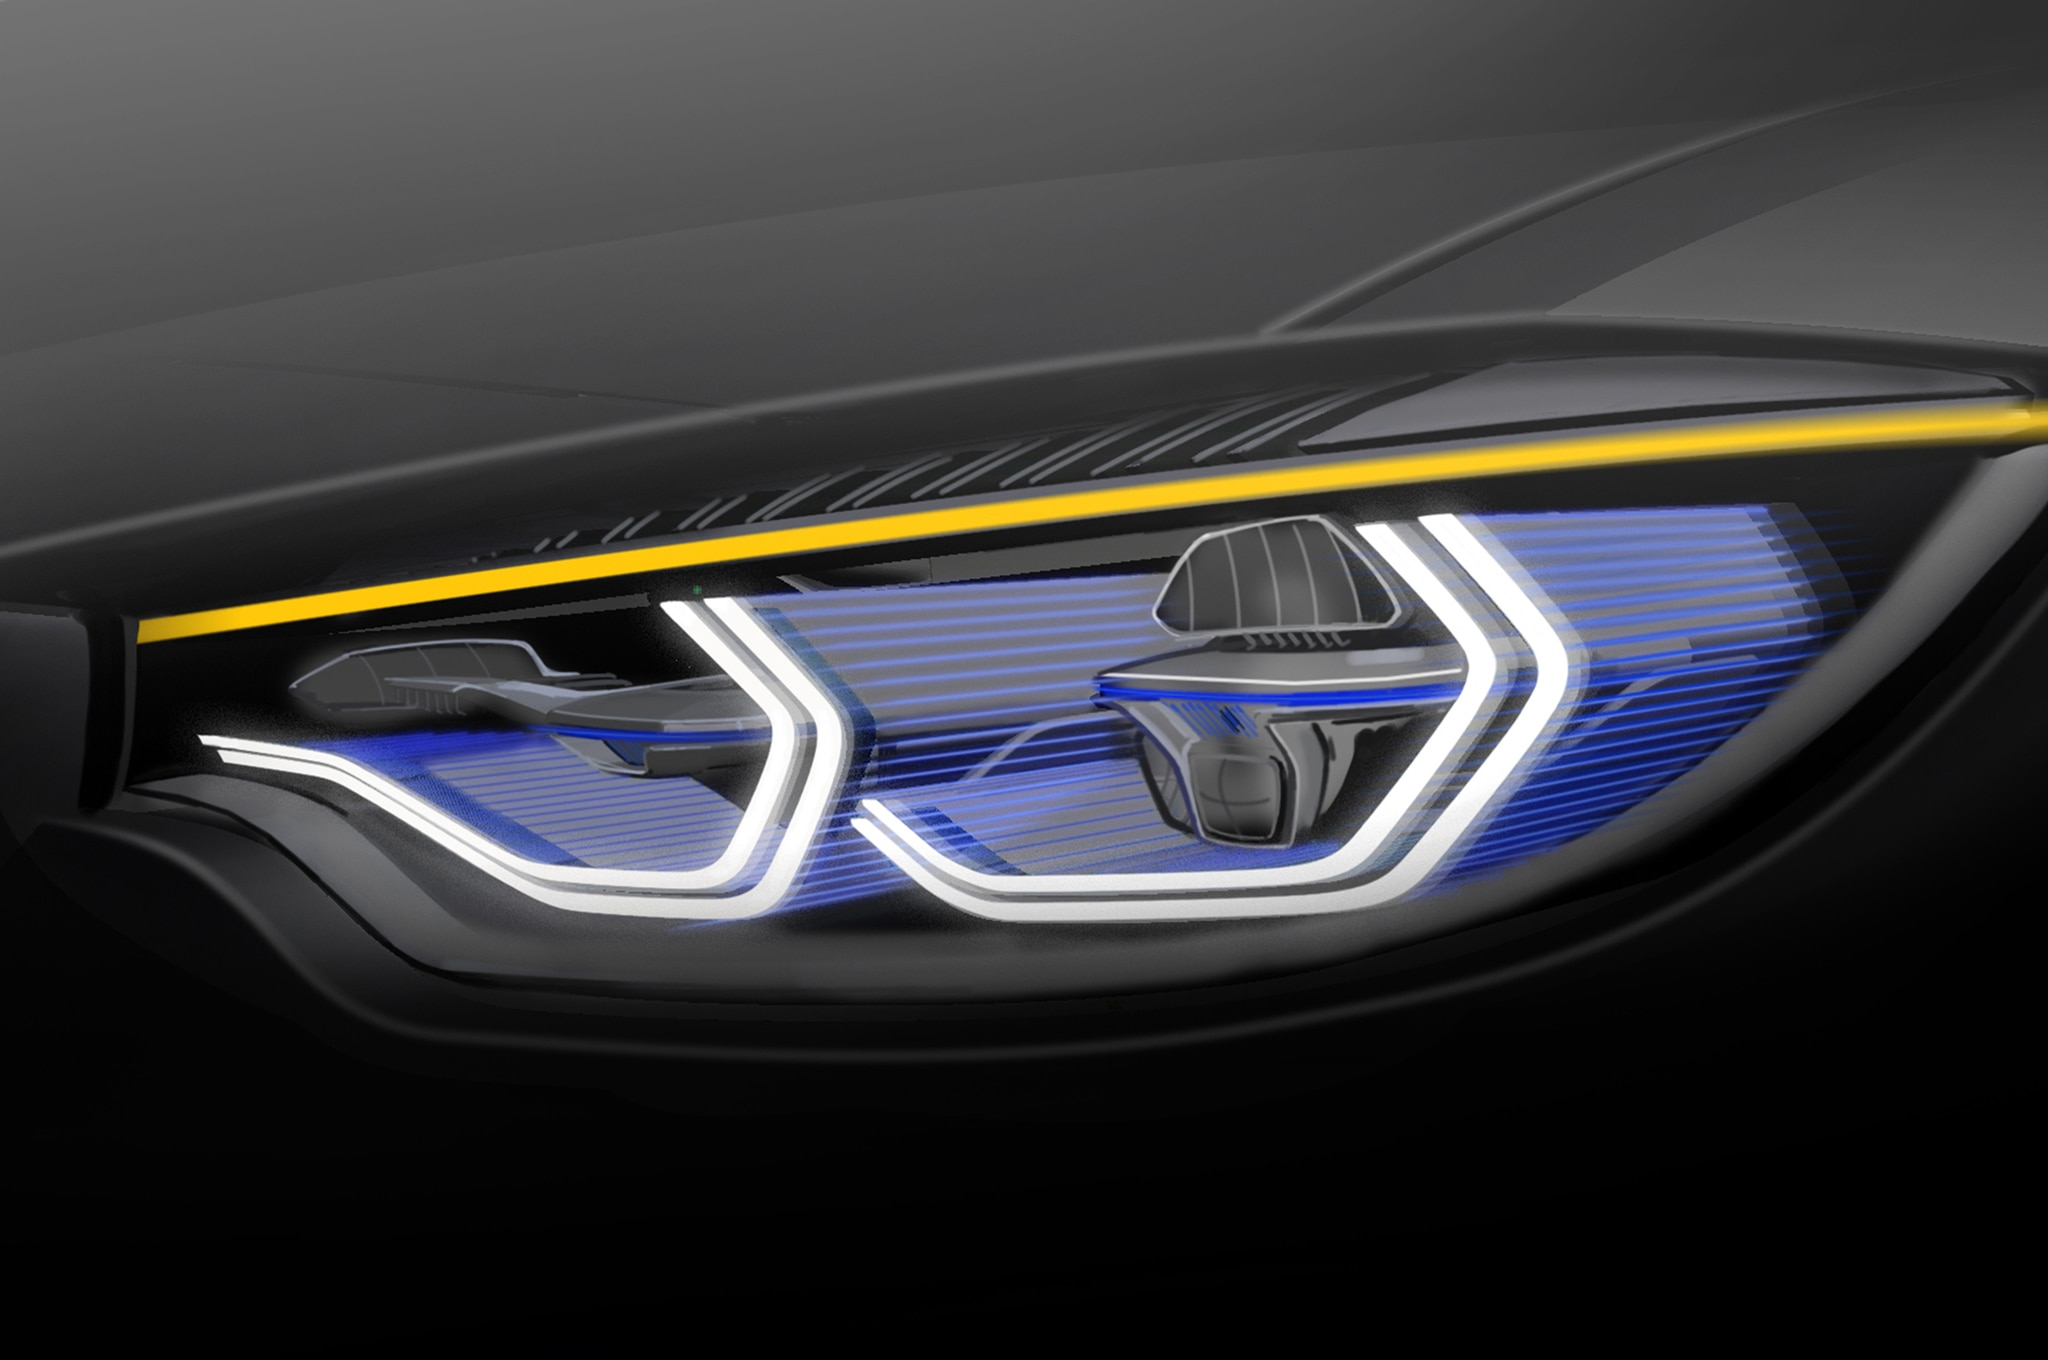 Bmw M4 Concept Iconic Lights Shows Laser And Oled Lighting